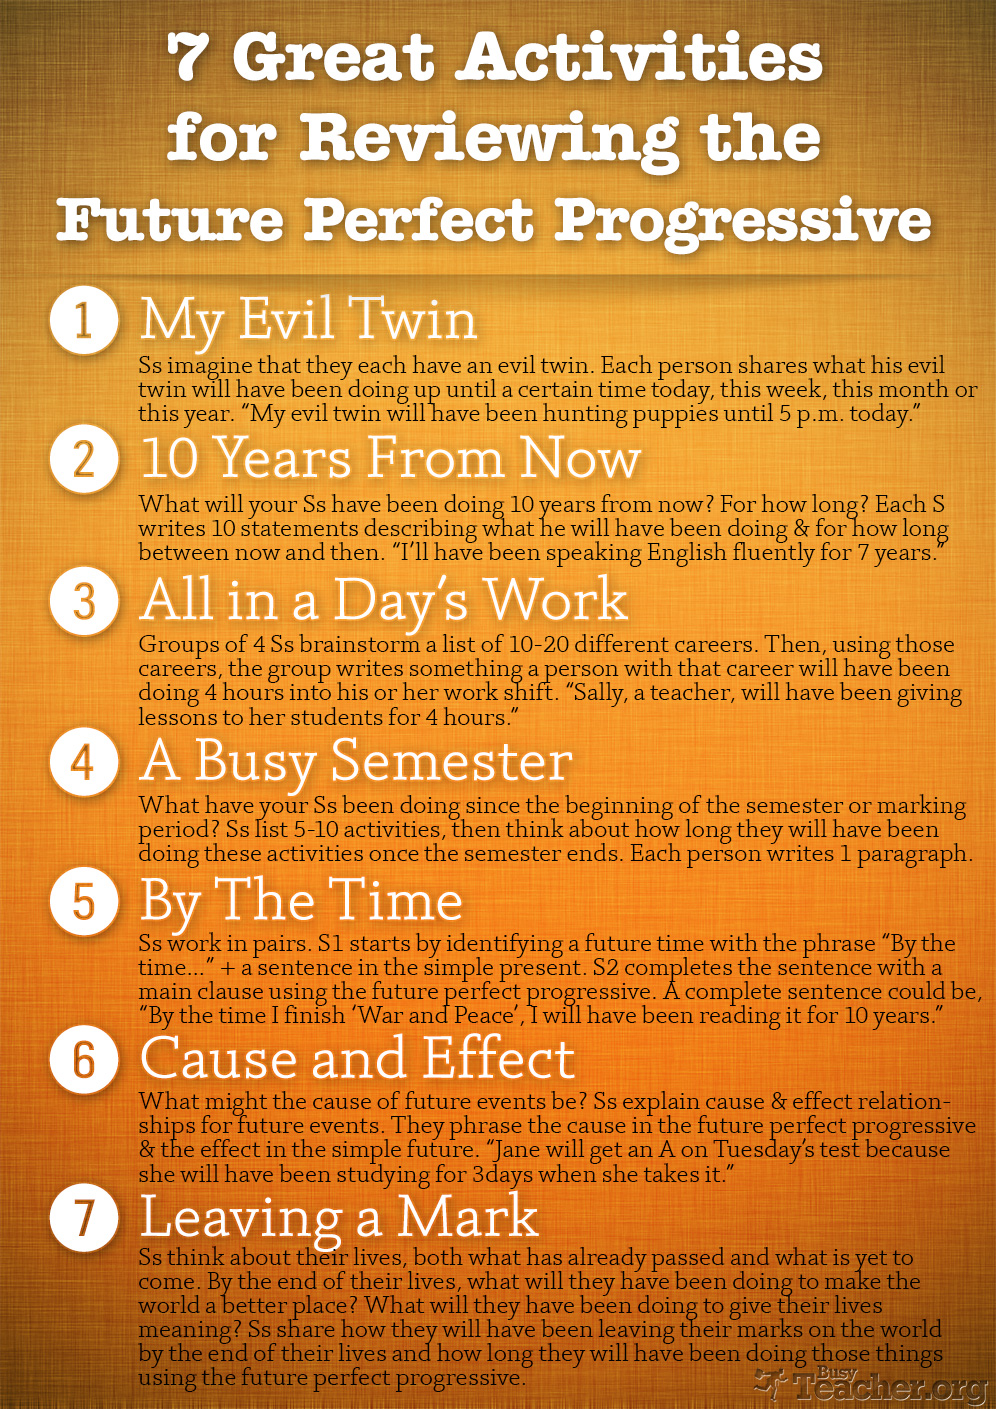 7 Great Activities to Review the Future Perfect Progressive: Poster